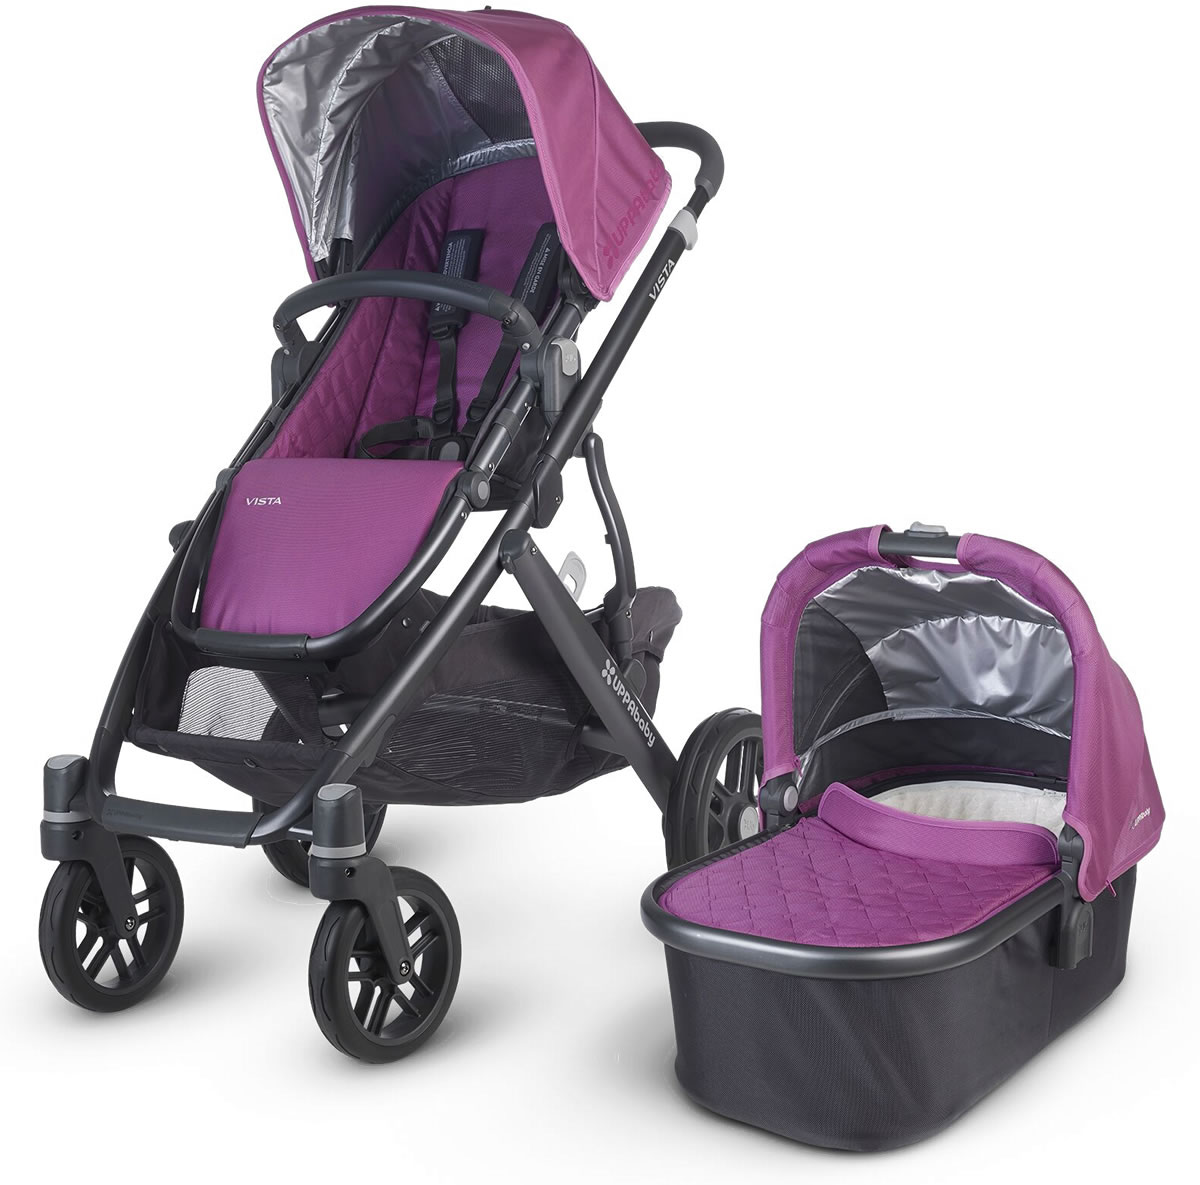 Uppa Baby 2015/2016 VISTA Stroller - Samantha (Purple/Black)